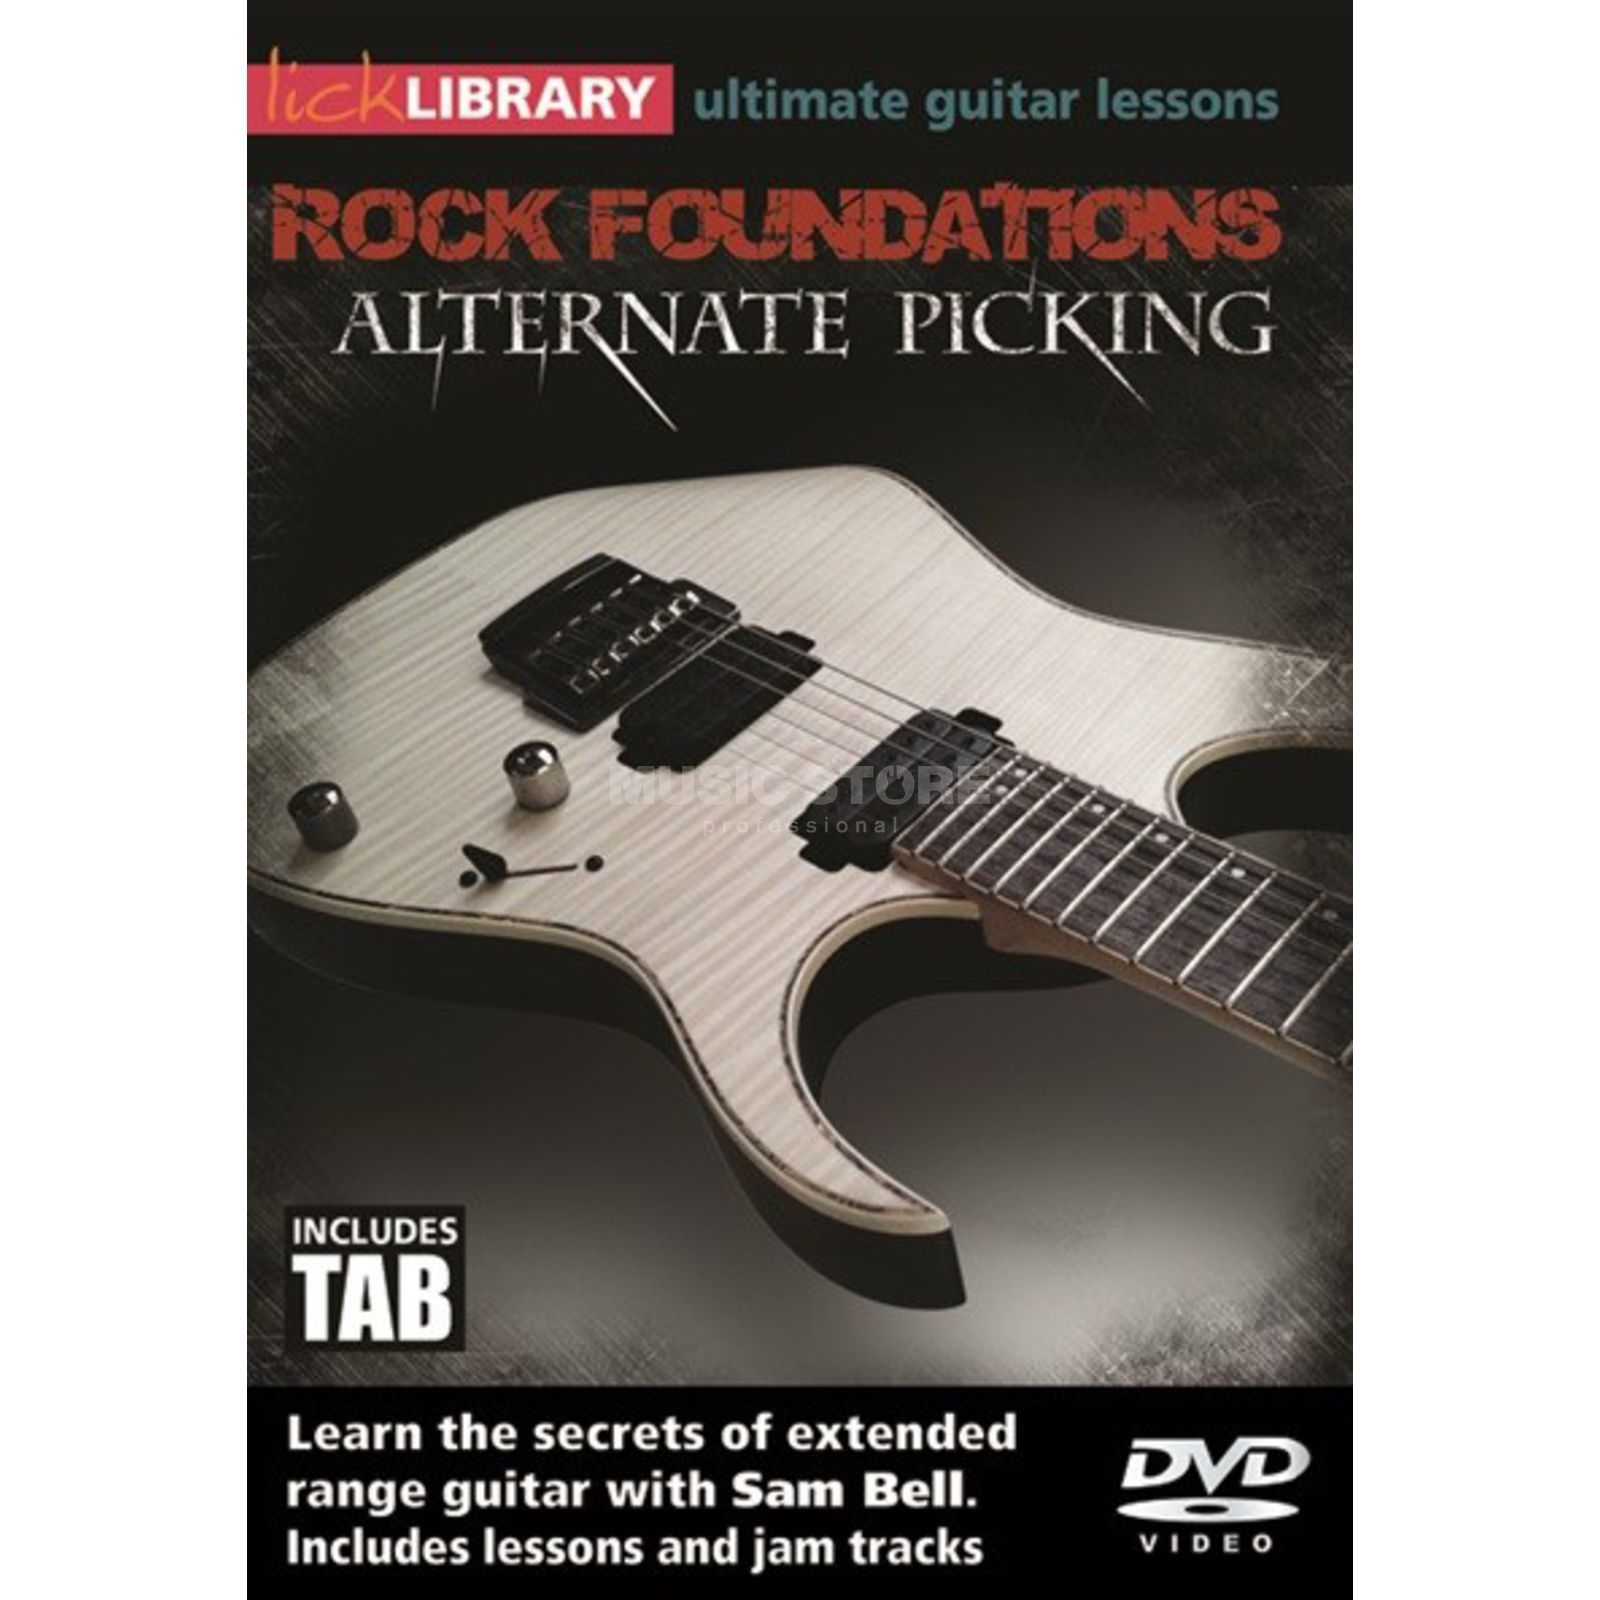 Roadrock International Lick Library: Rock Foundations Alternate Picking DVD Produktbillede